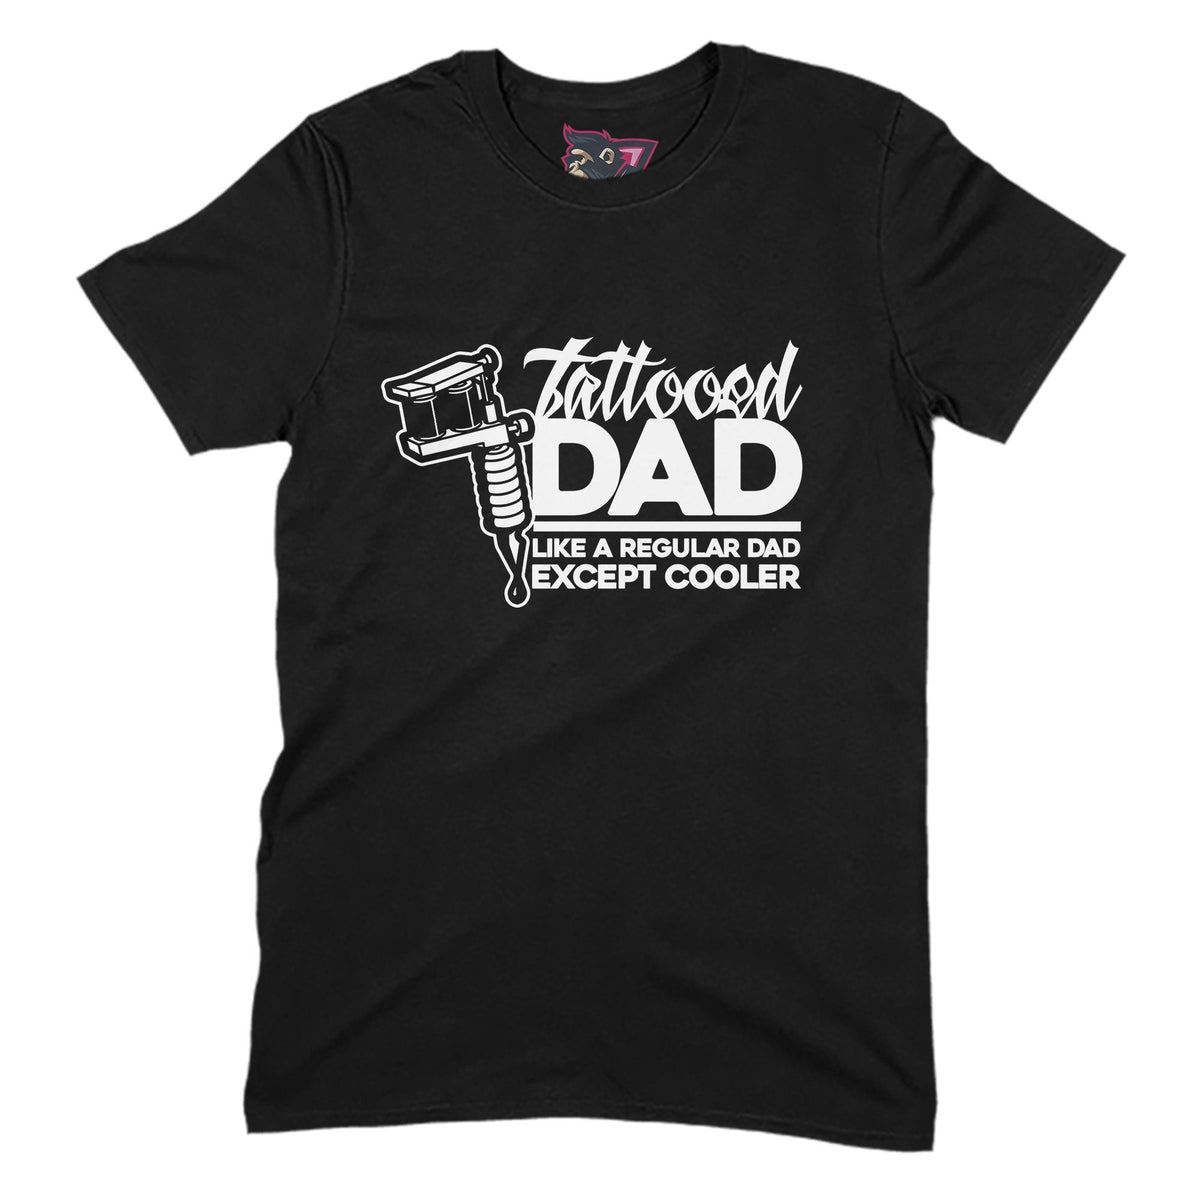 Tattooed Dad Primate Novelty Unisex T-Shirt Adults: S